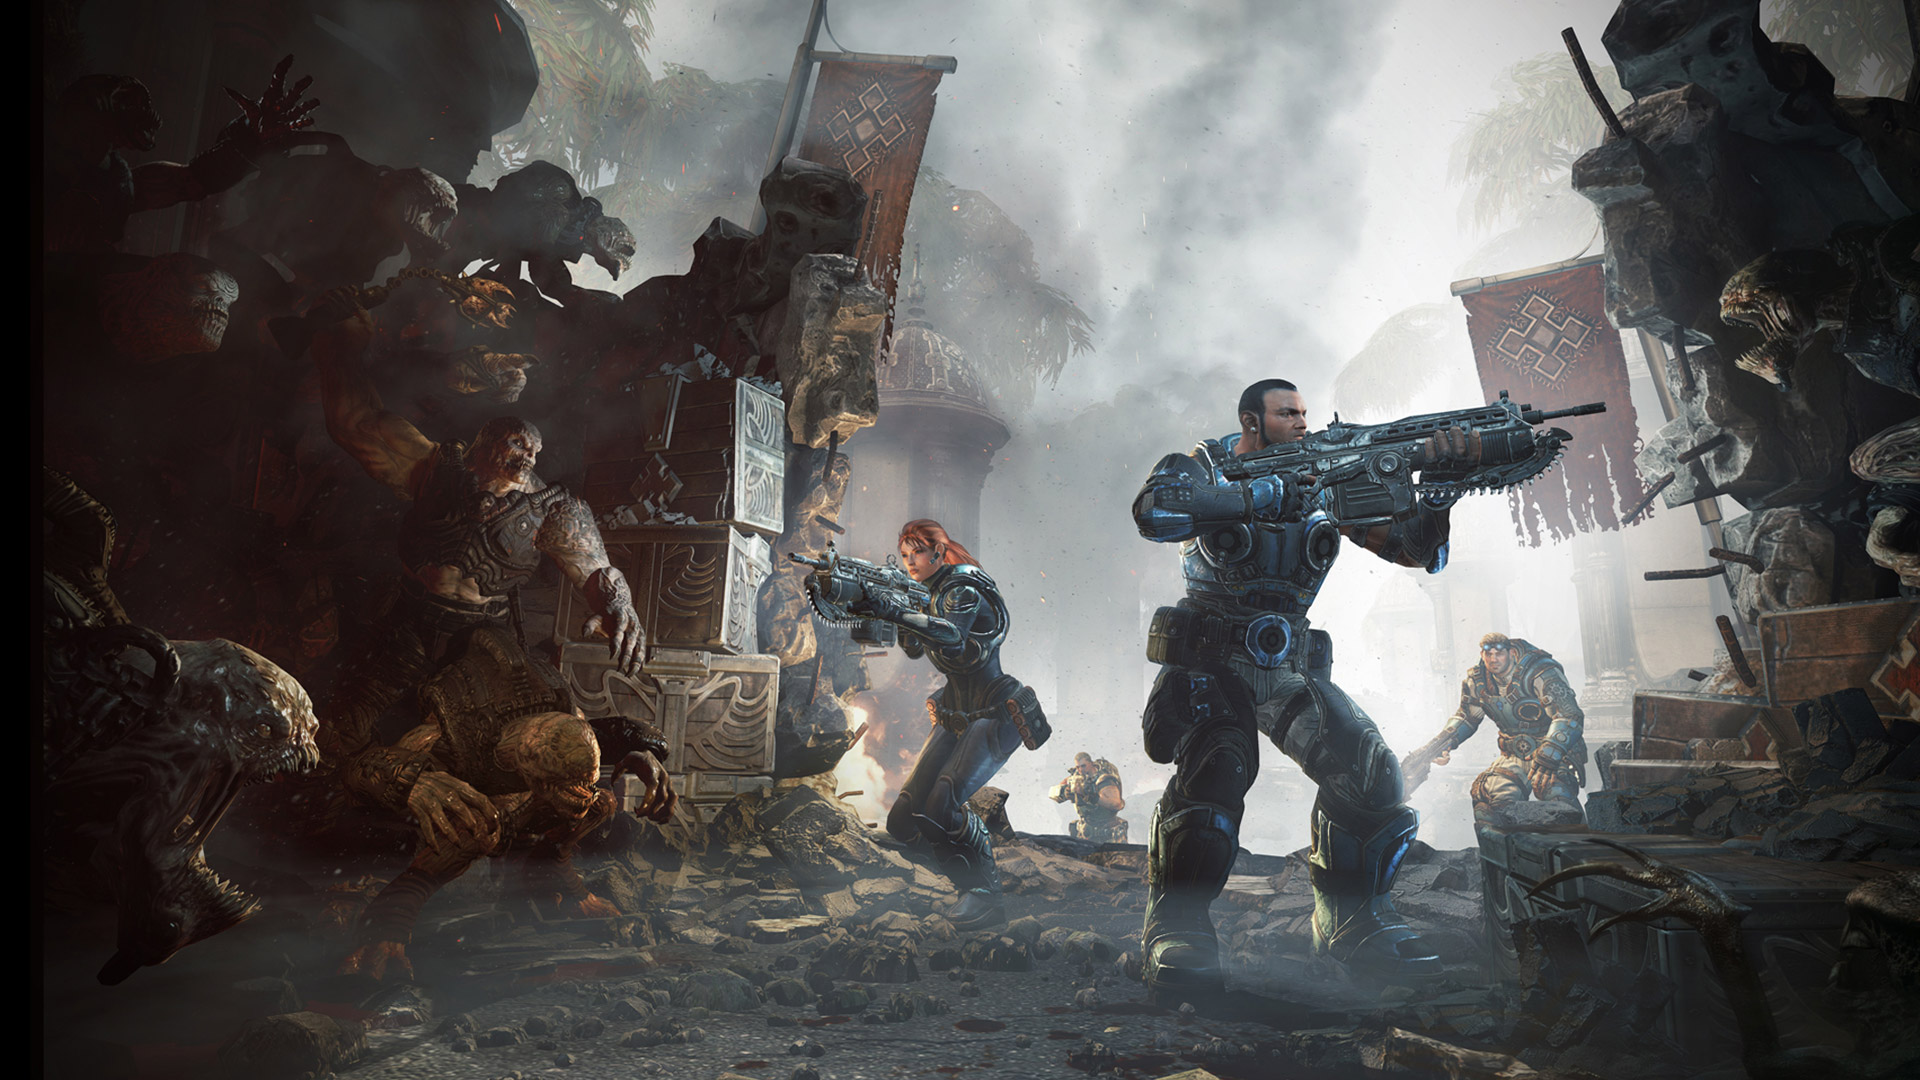 Download Gears Of War Wallpaper 28280 1920x1080 Px High Definition